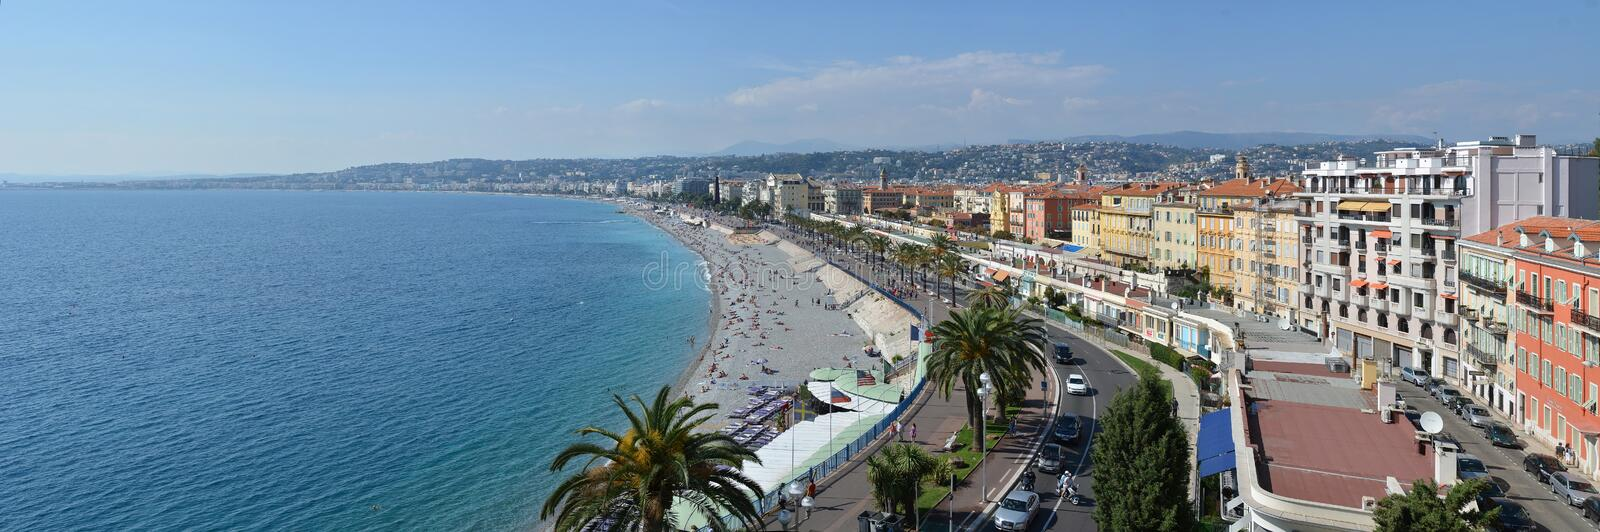 Nice Panorama of Beaches & Promenade Des Anglais, France royalty free stock photos